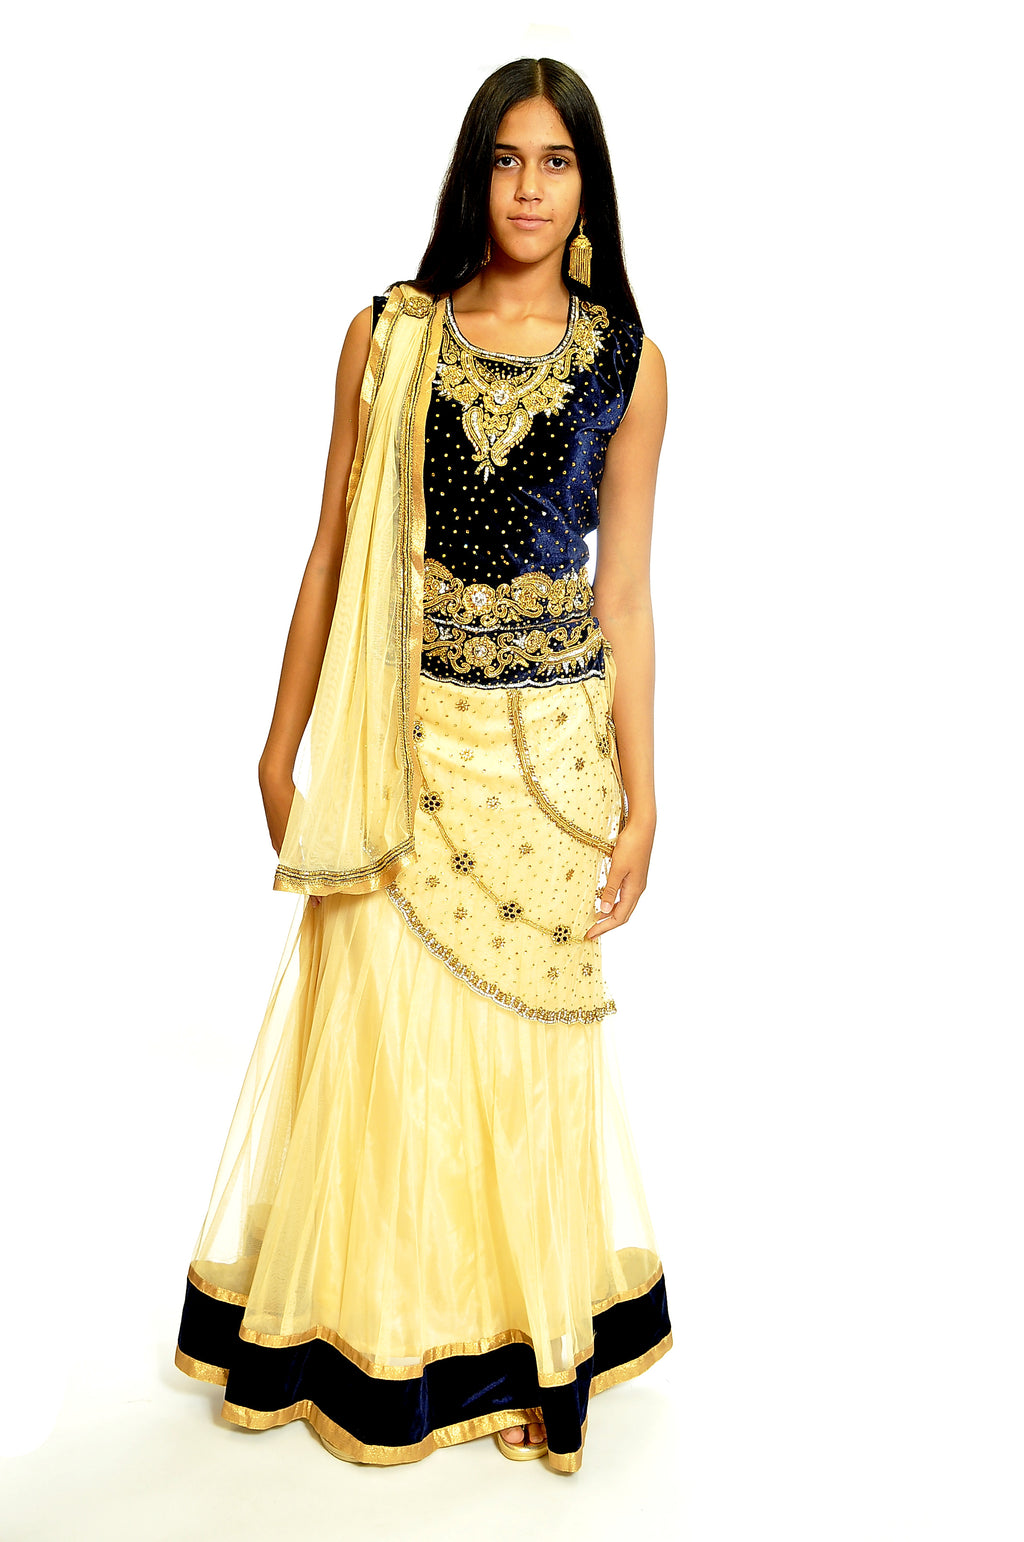 Formal Cream and Navy Lehenga